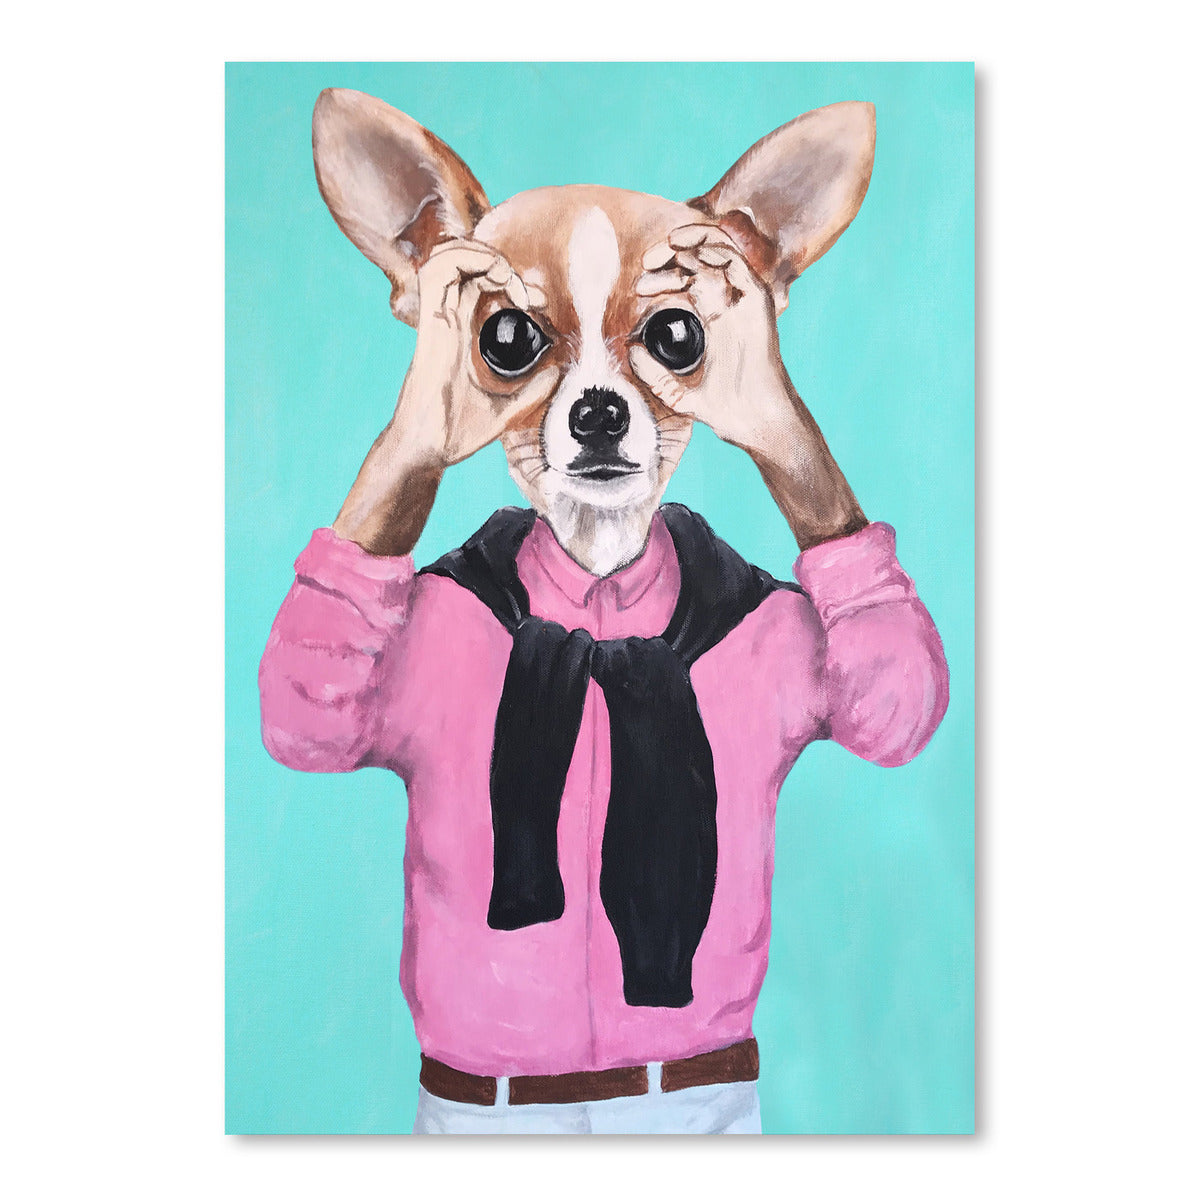 Chihuahua Is Watching You by Coco de Paris - Art Print - Americanflat